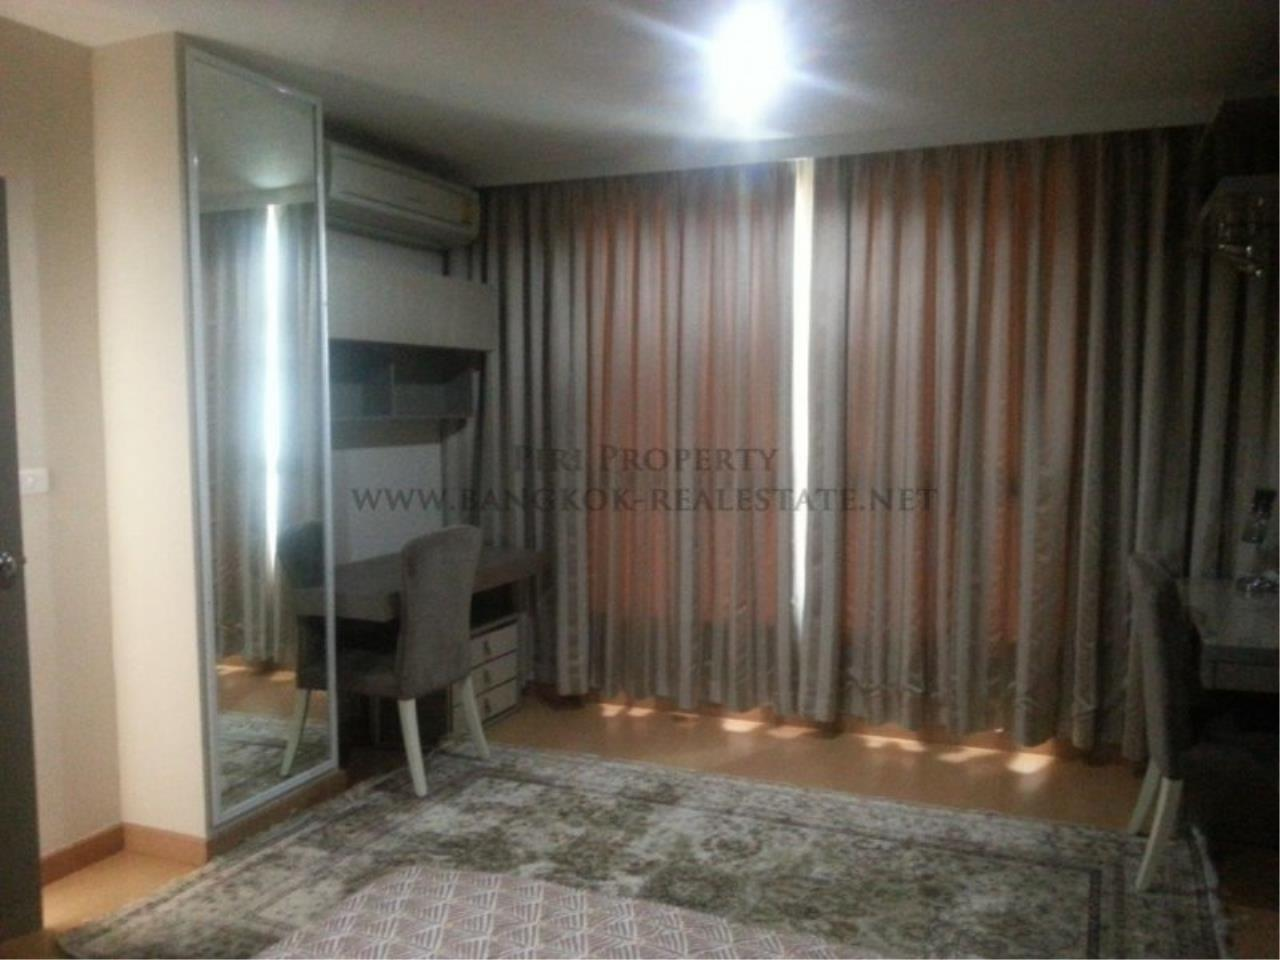 Piri Property Agency's 2 Bed - 80 SQM - near Phra Khanong - Nice Low Rise Condo fully renovated 5